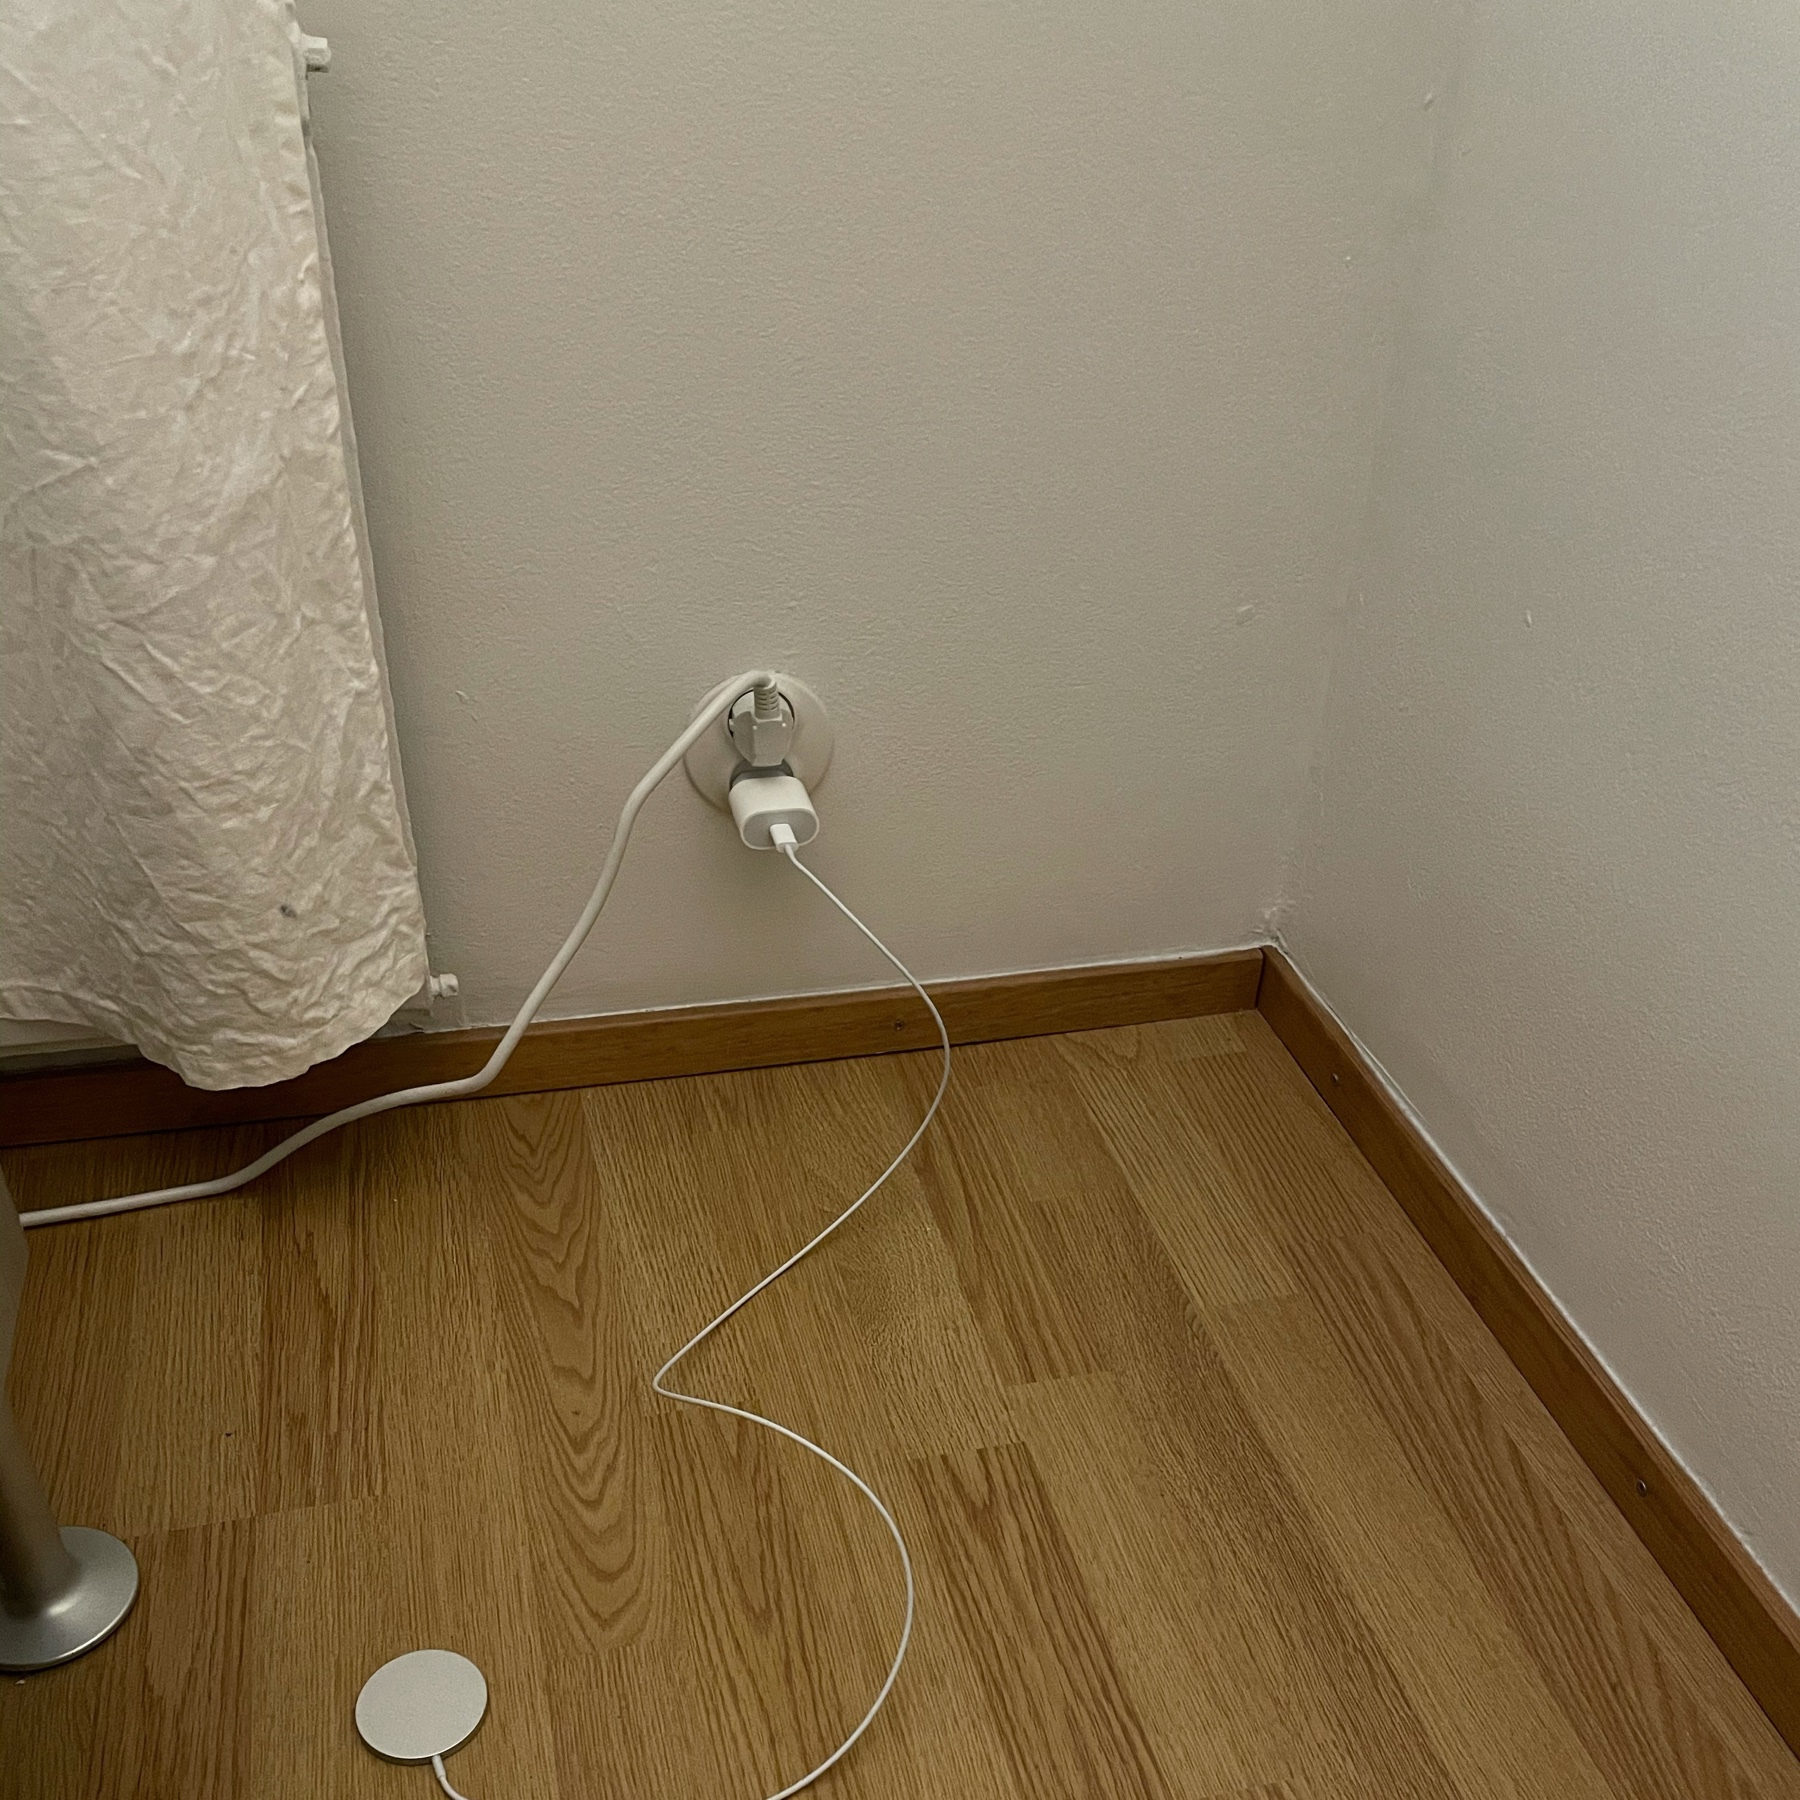 faux wooden floor, bed, magsafe charger on the floor